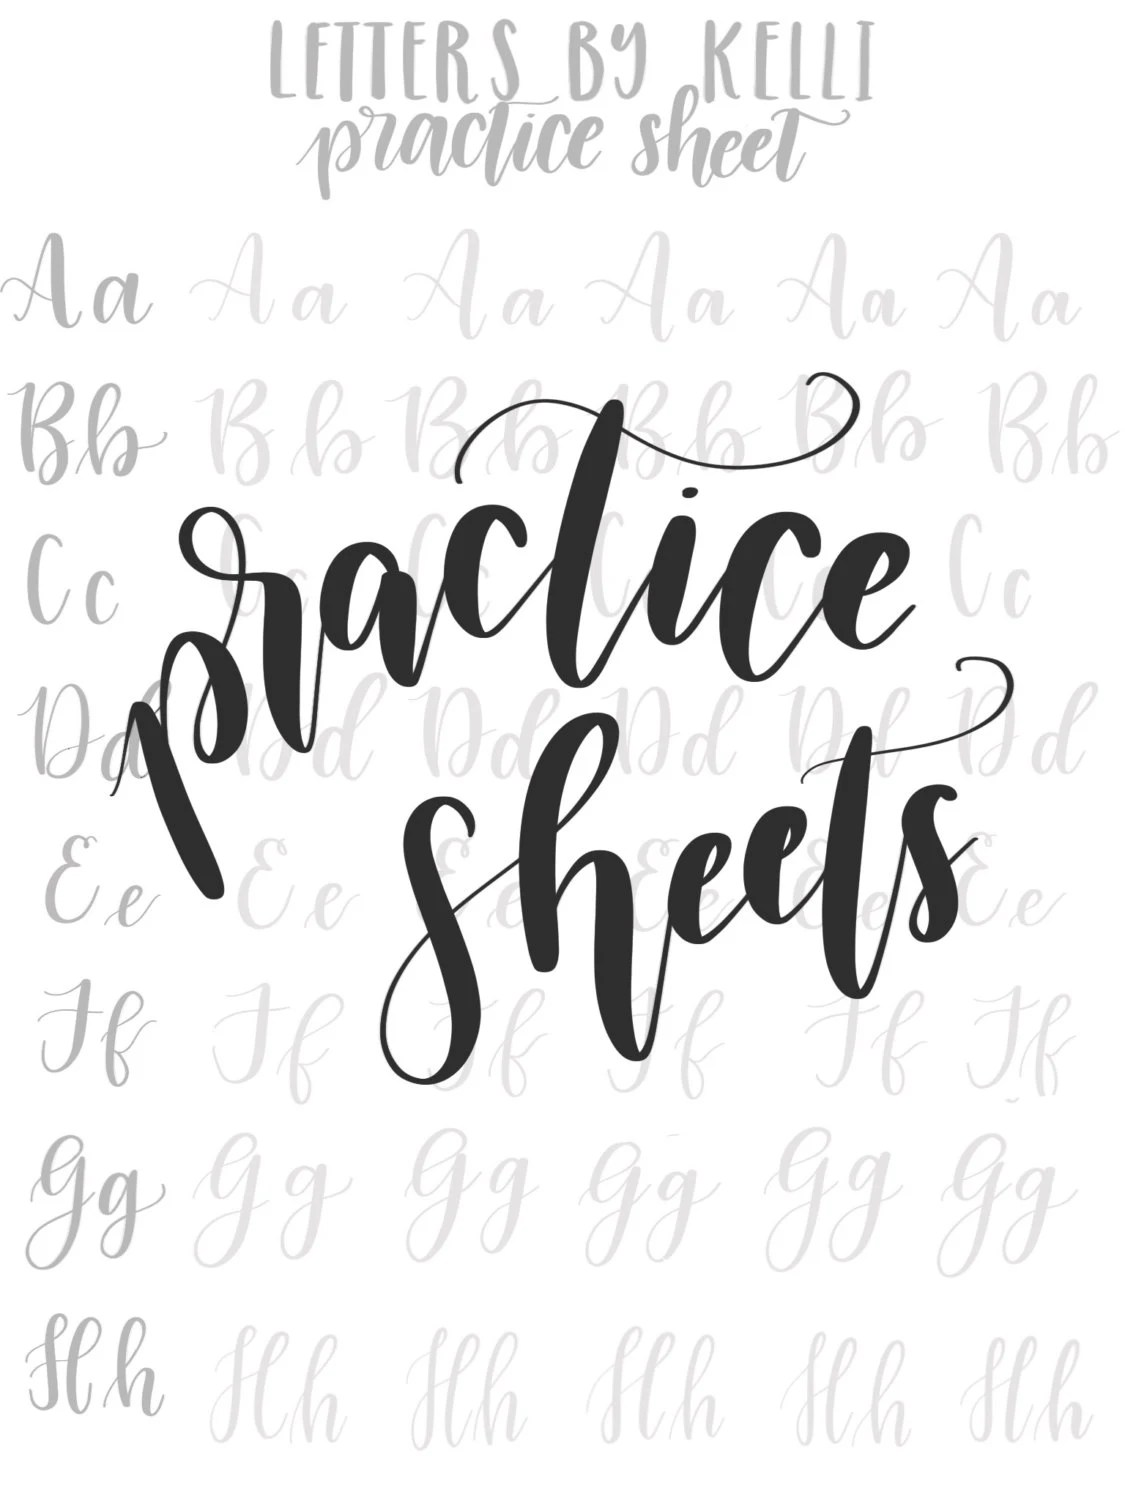 Practice Uppercase And Lowercase Hand Lettering Worksheets From Lettersbykelli On Etsy Studio